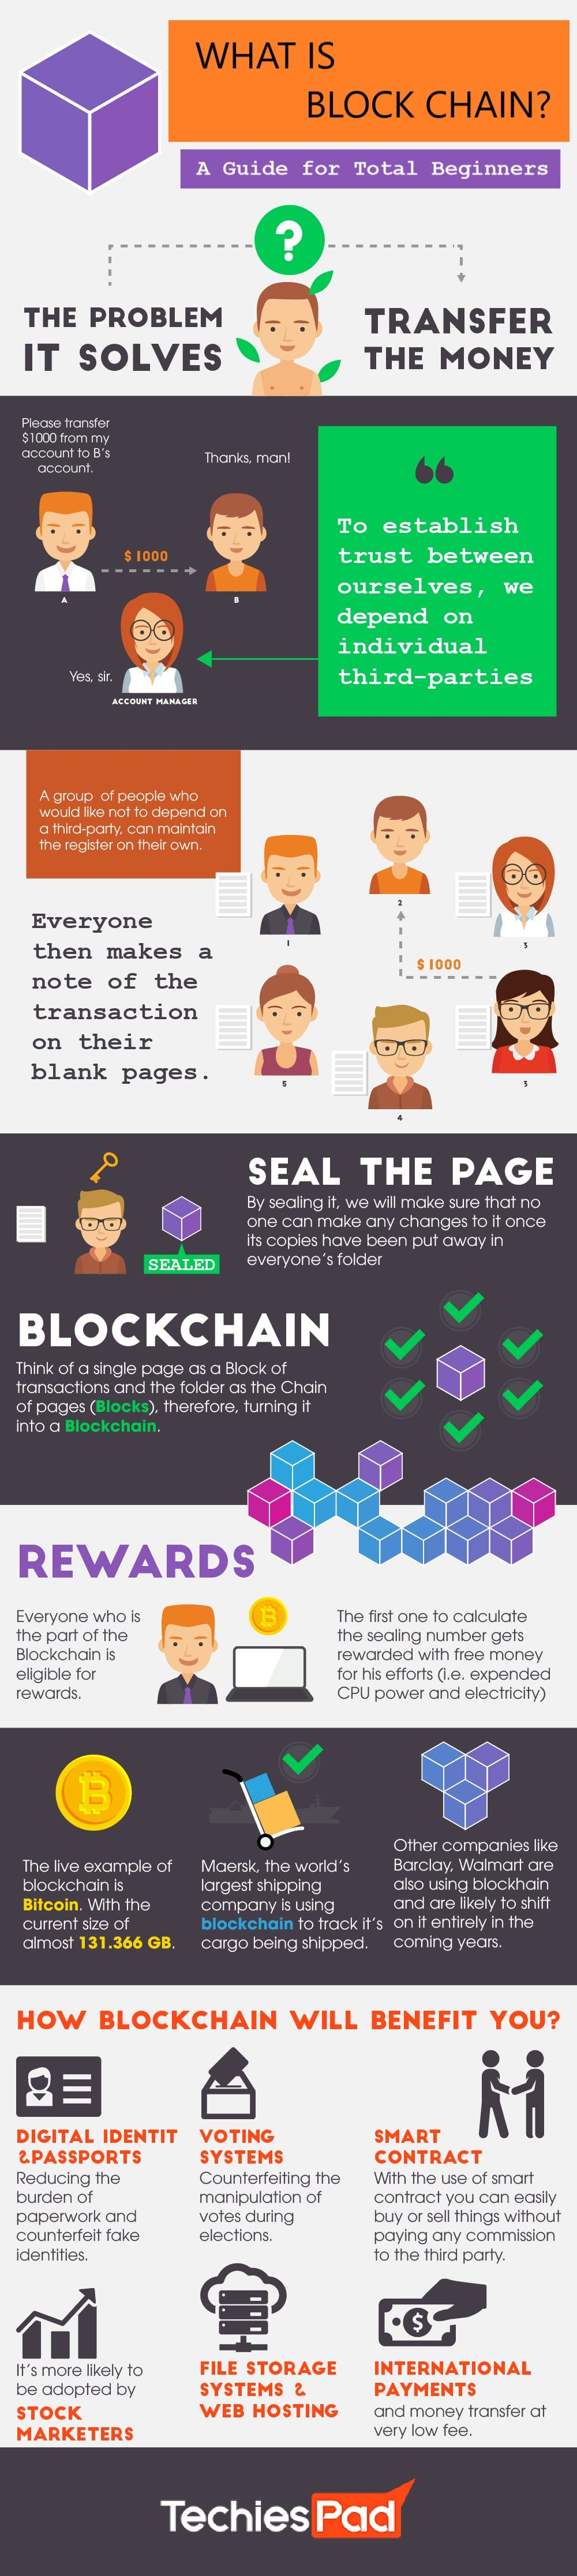 WHAT IS BLOCK CHAIN